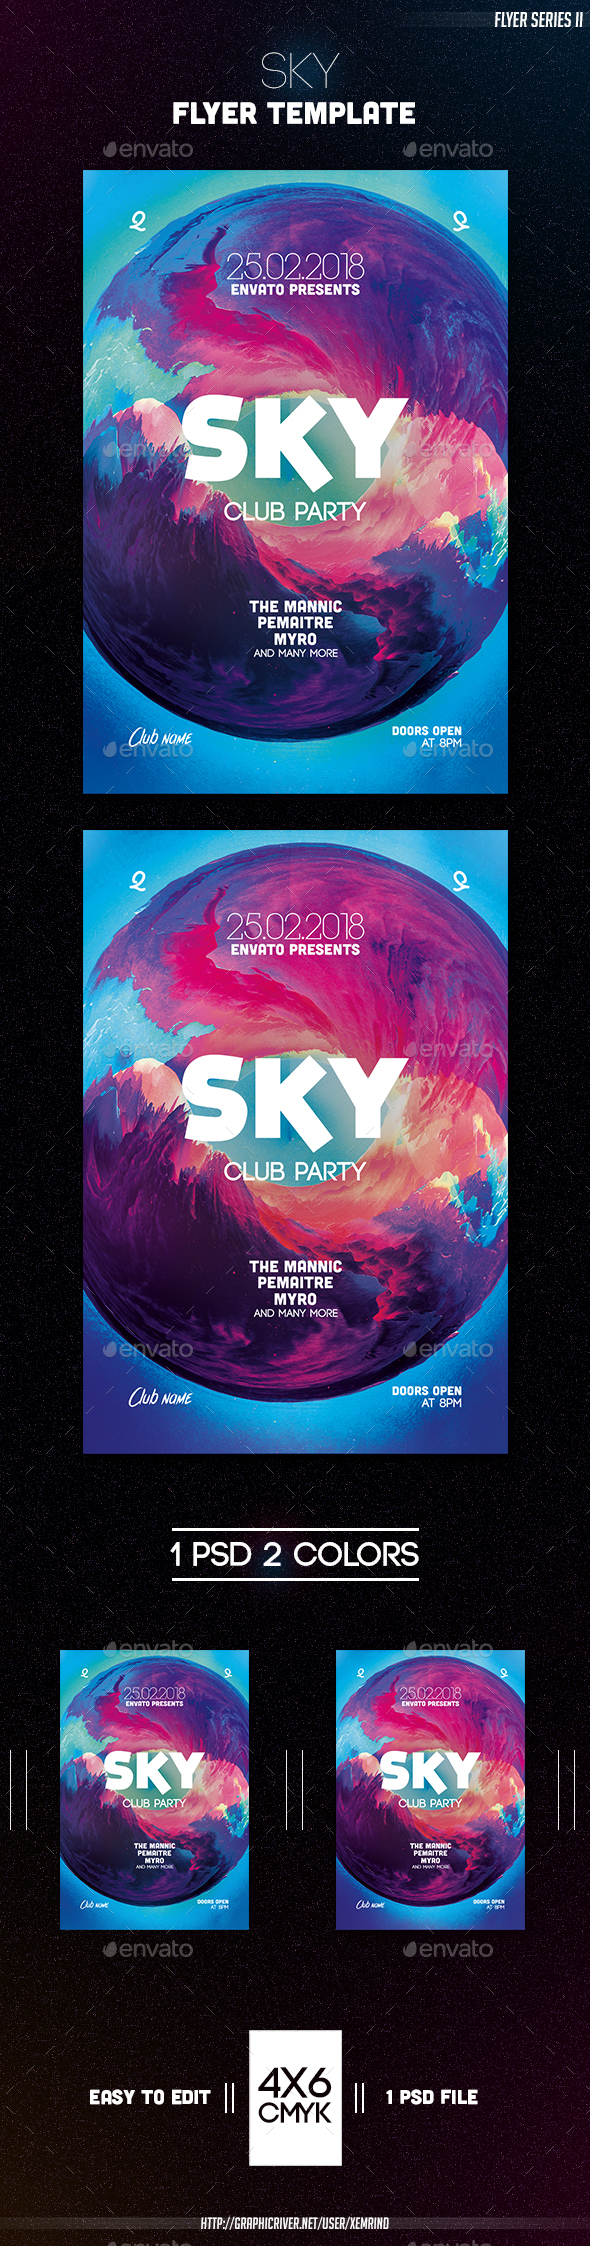 Sky Flyer Template - Clubs & Parties Events